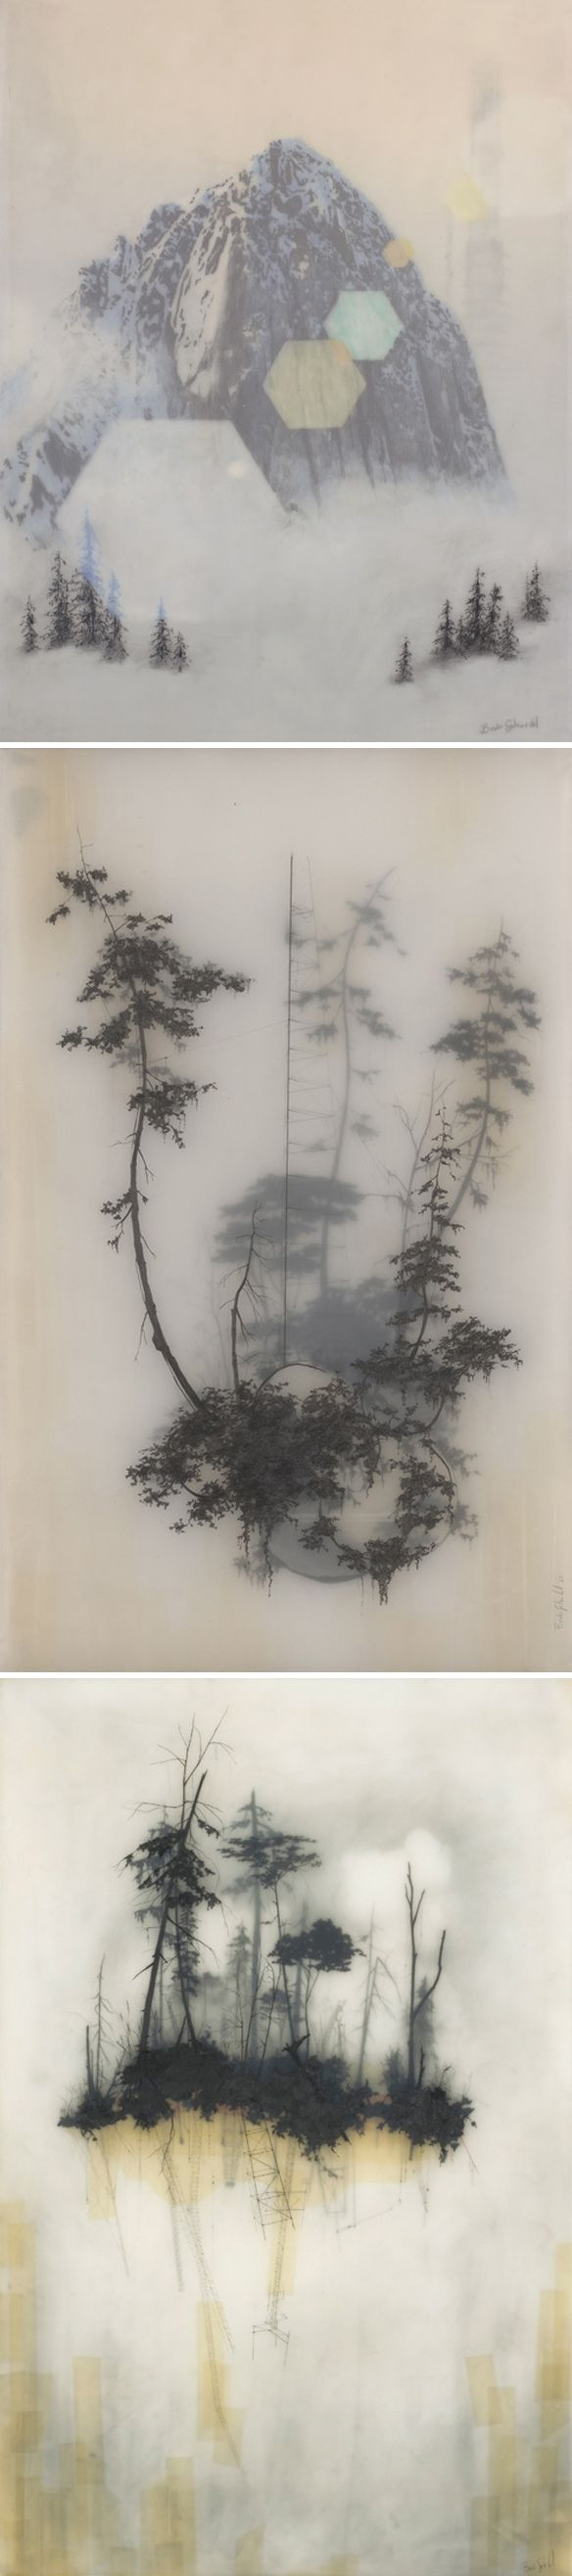 Brooks Shane Salzwedel, graphite drawings